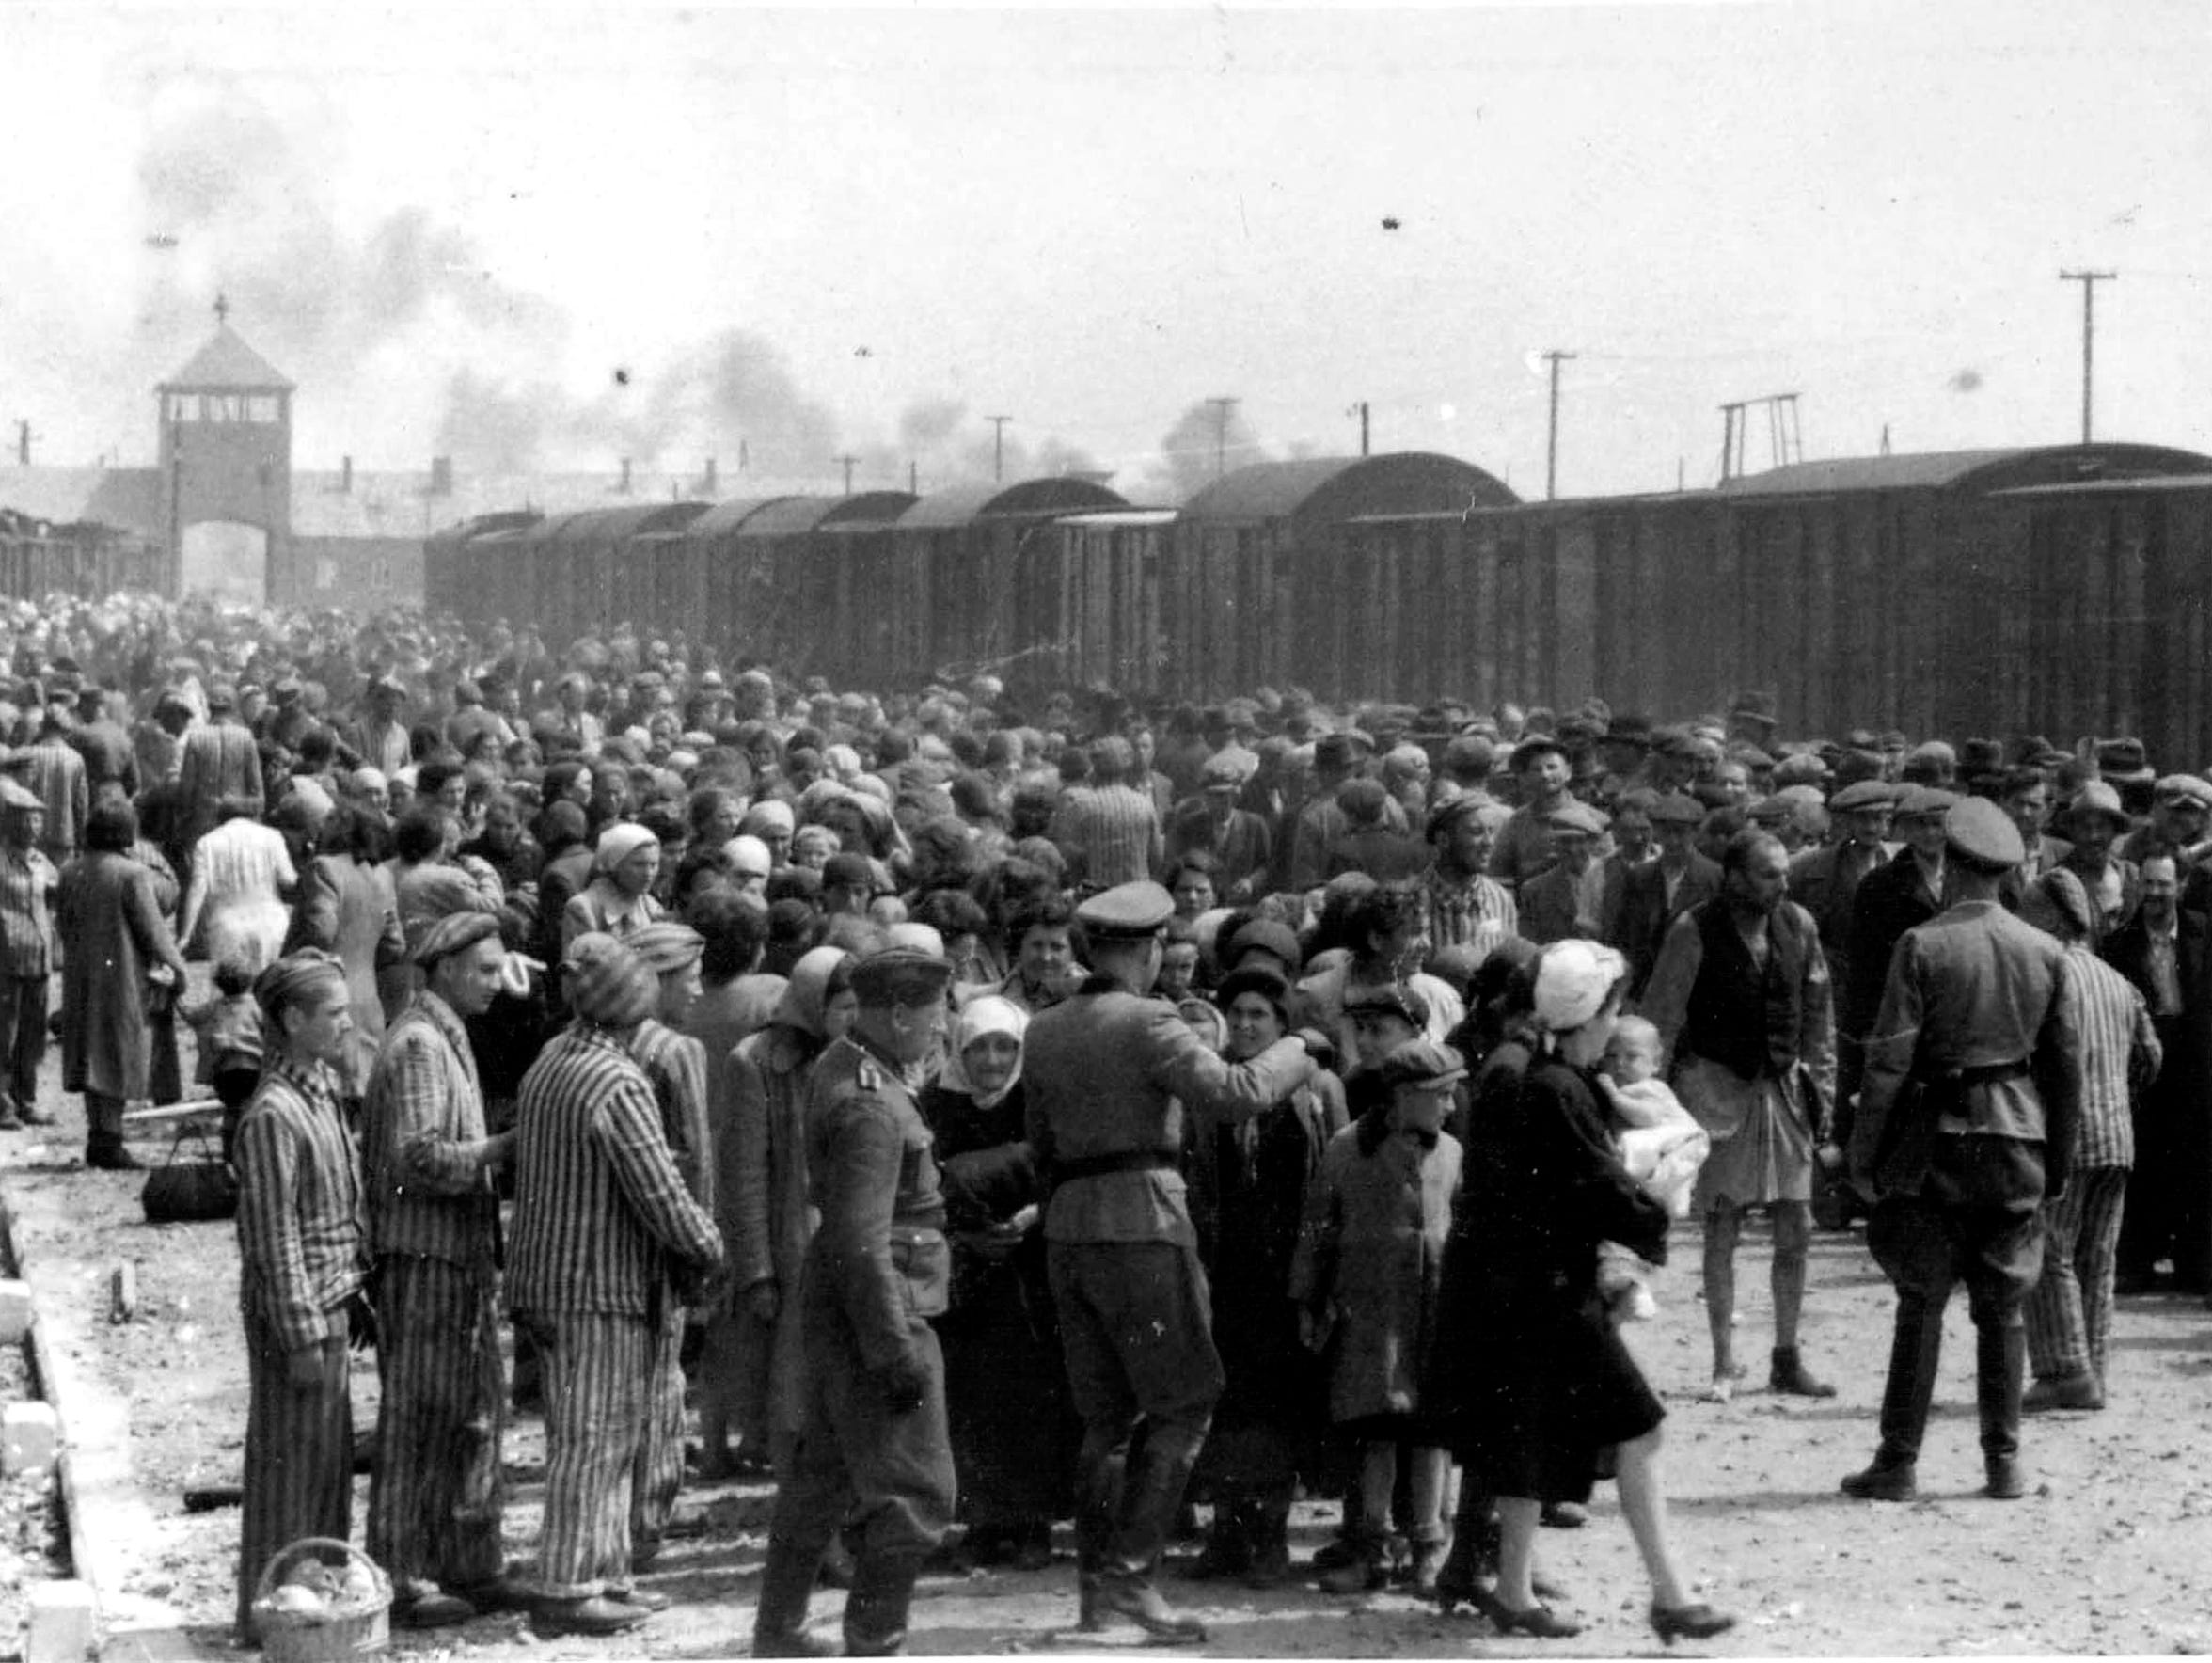 Jews are processed upon arrival at Auschwitz-Birkenau,